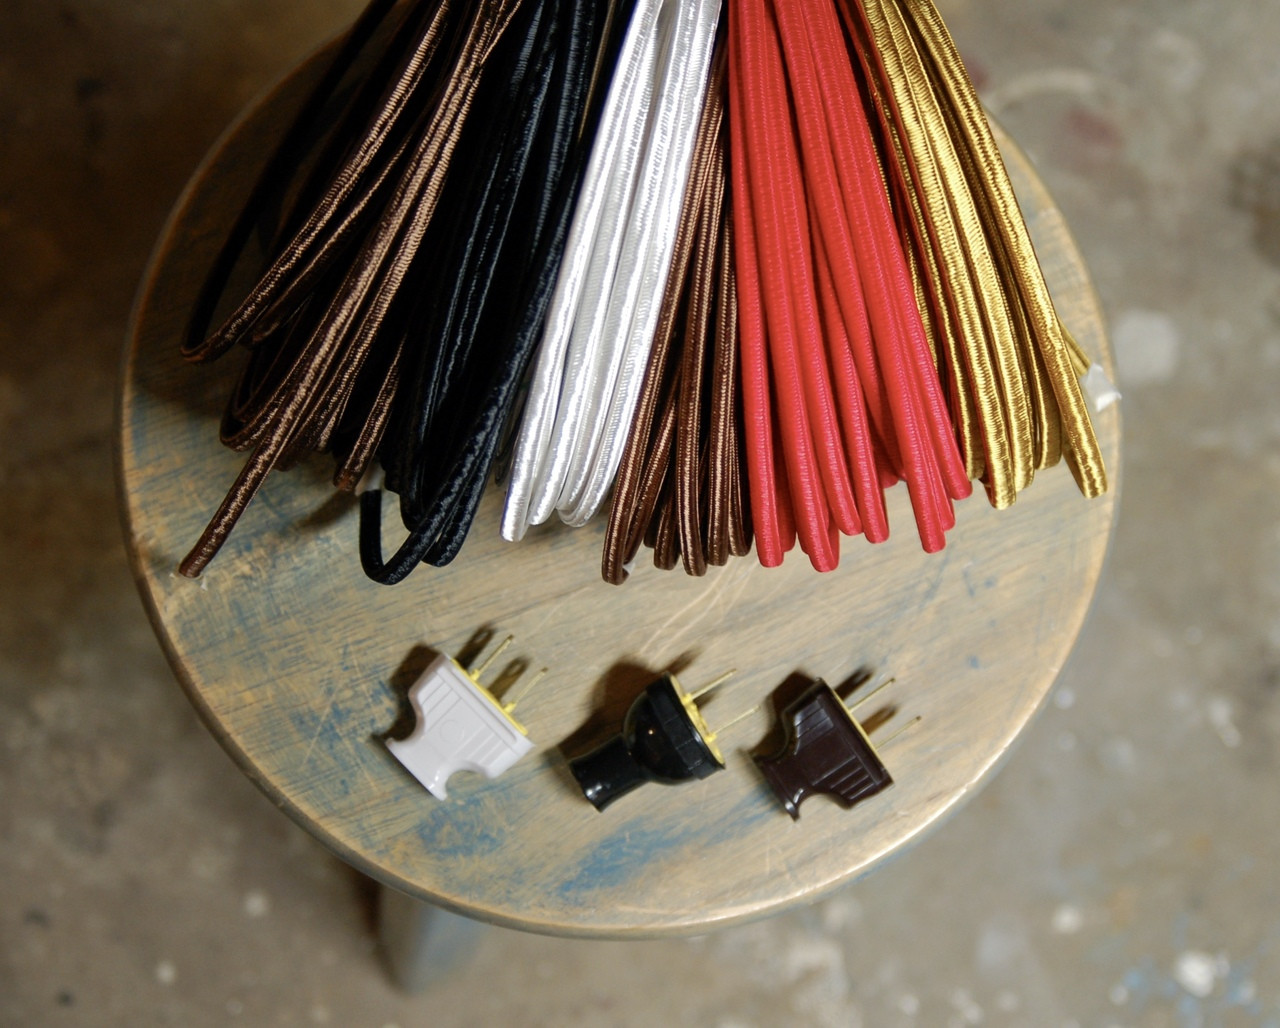 18ga Vintage Style Lamps Antique Lights Putty 2-Wire Cloth Covered Cord Cotton